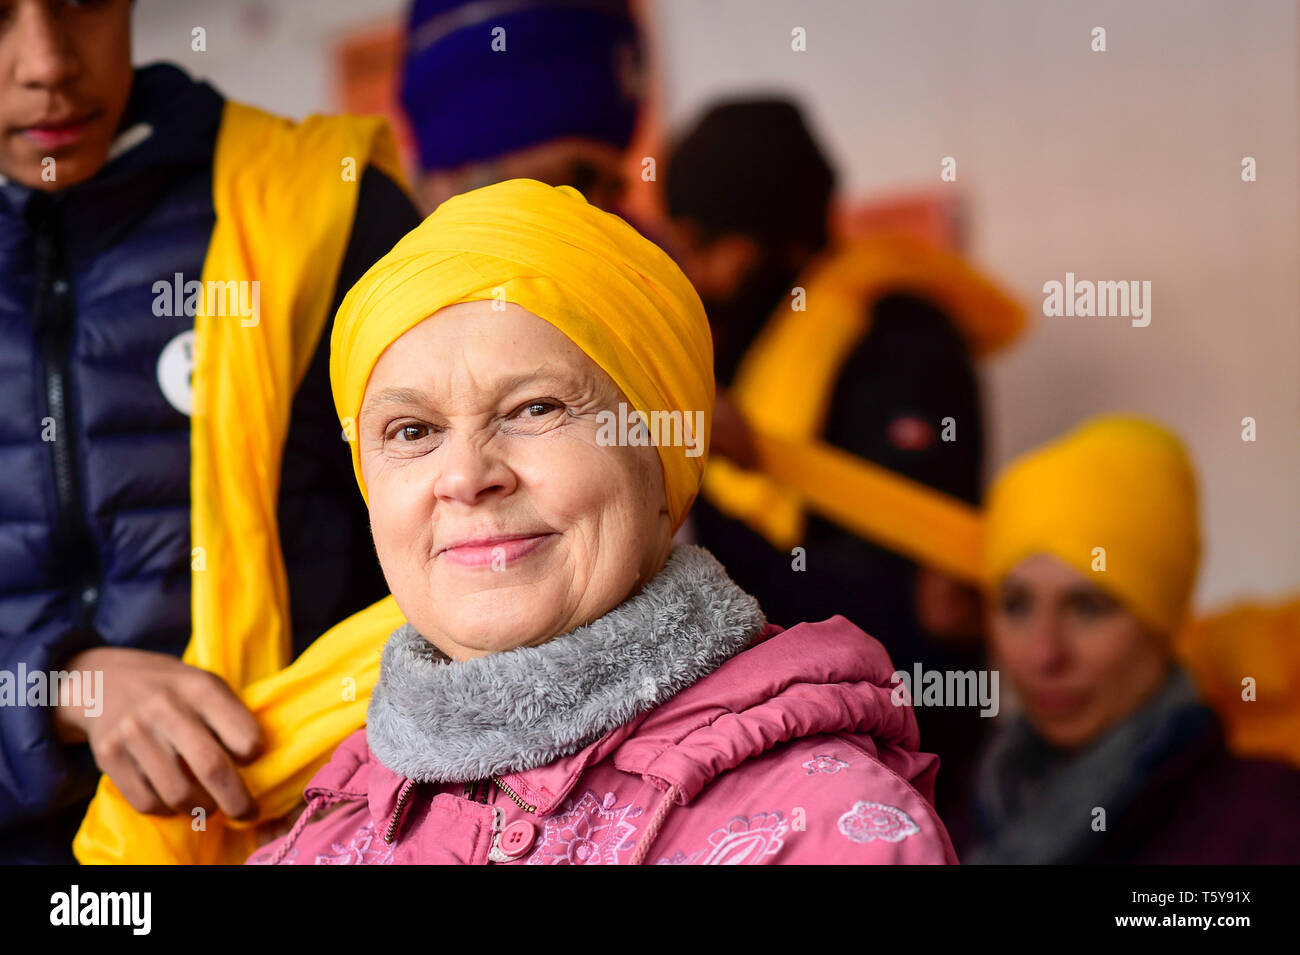 London, UK.  27 April 2019.  A woman has a turban tied during the festival of Vaisakhi in Trafalgar Square, hosted by the Mayor of London.  For Sikhs and Punjabis, the festival celebrates the spring harvest and commemorates the founding of the Khalsa community over 300 years ago.  Credit: Stephen Chung / Alamy Live News - Stock Image